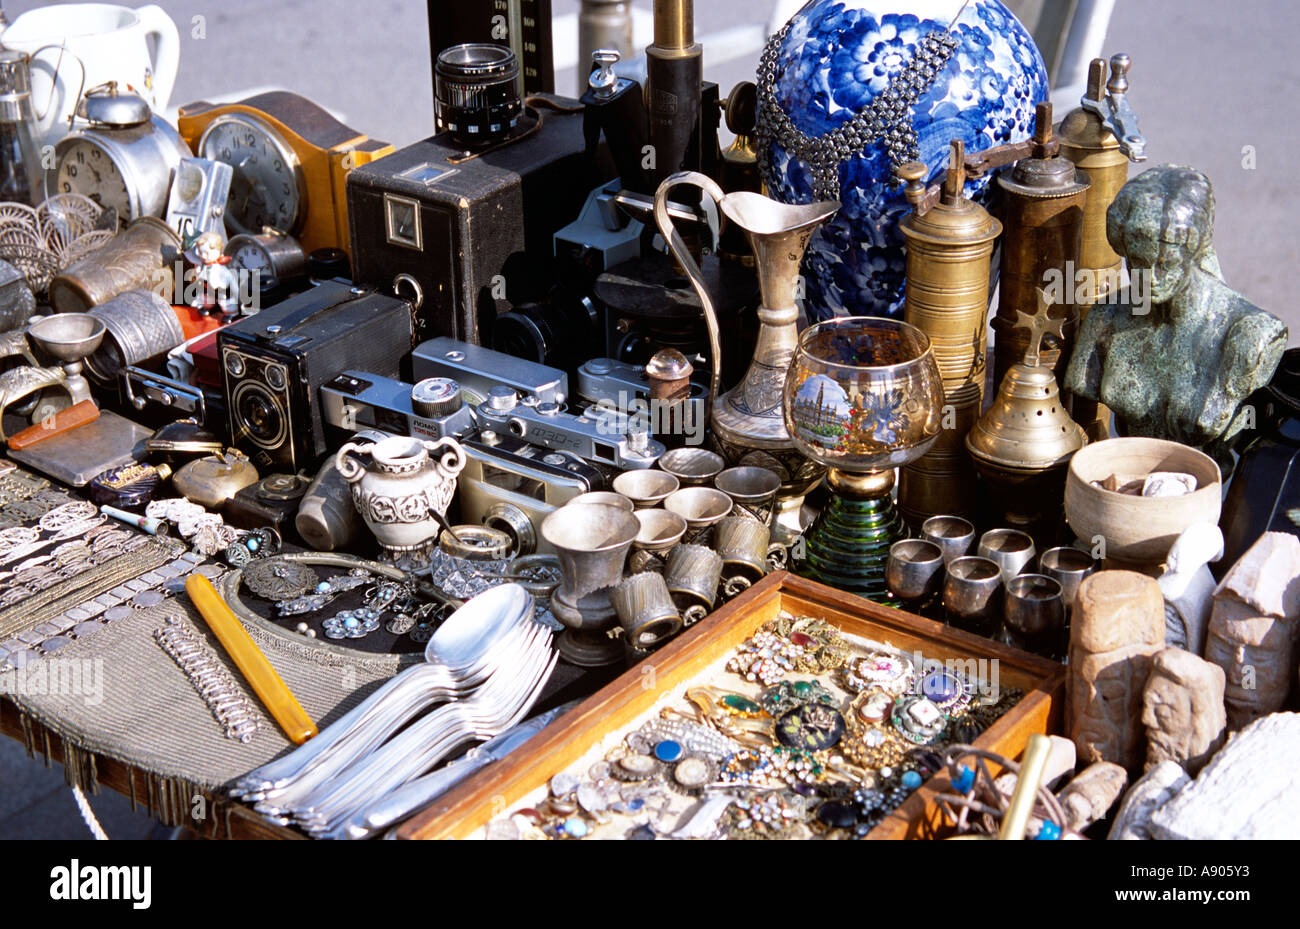 Antiques for sale on stall, Sofia, Bulgaria Stock Photo: 6975602 - Alamy